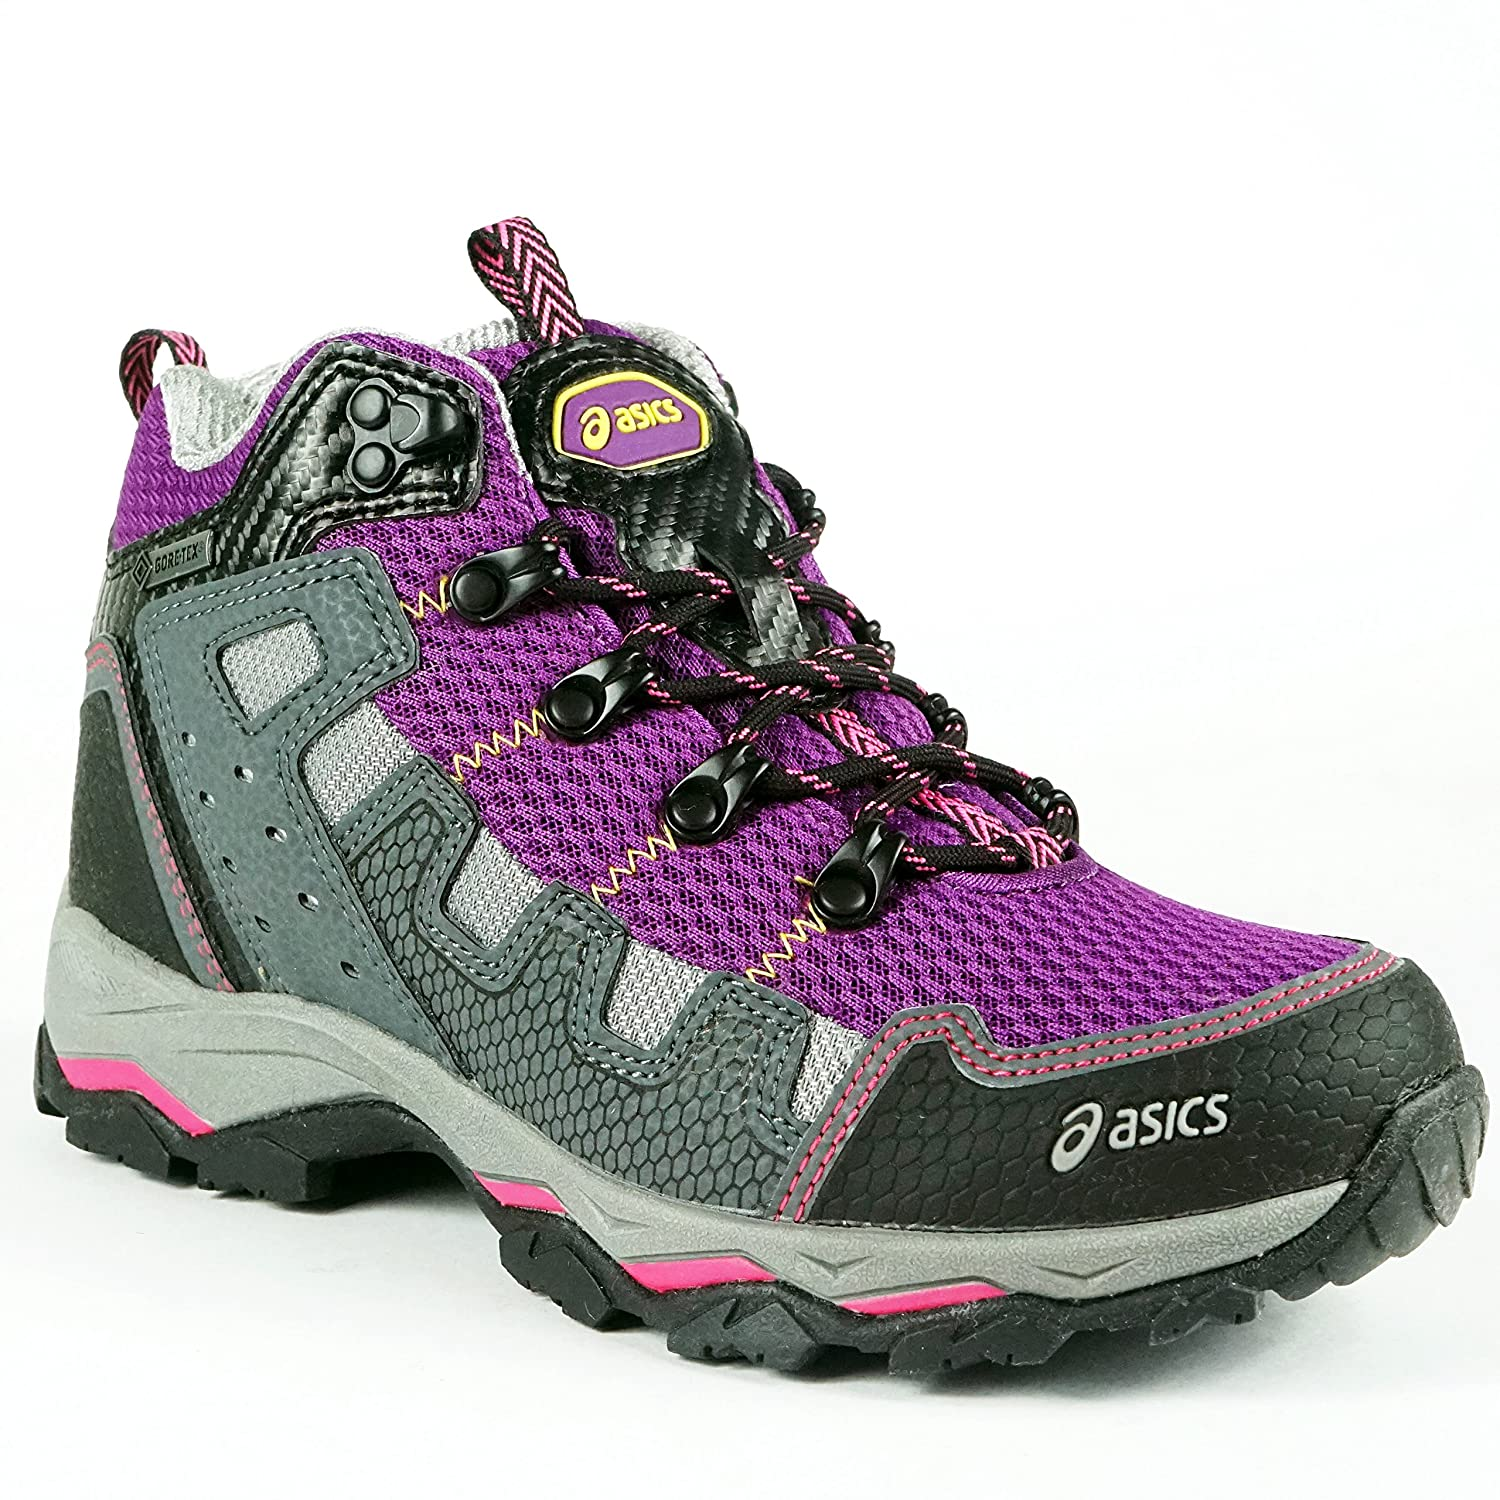 asics hiking boots